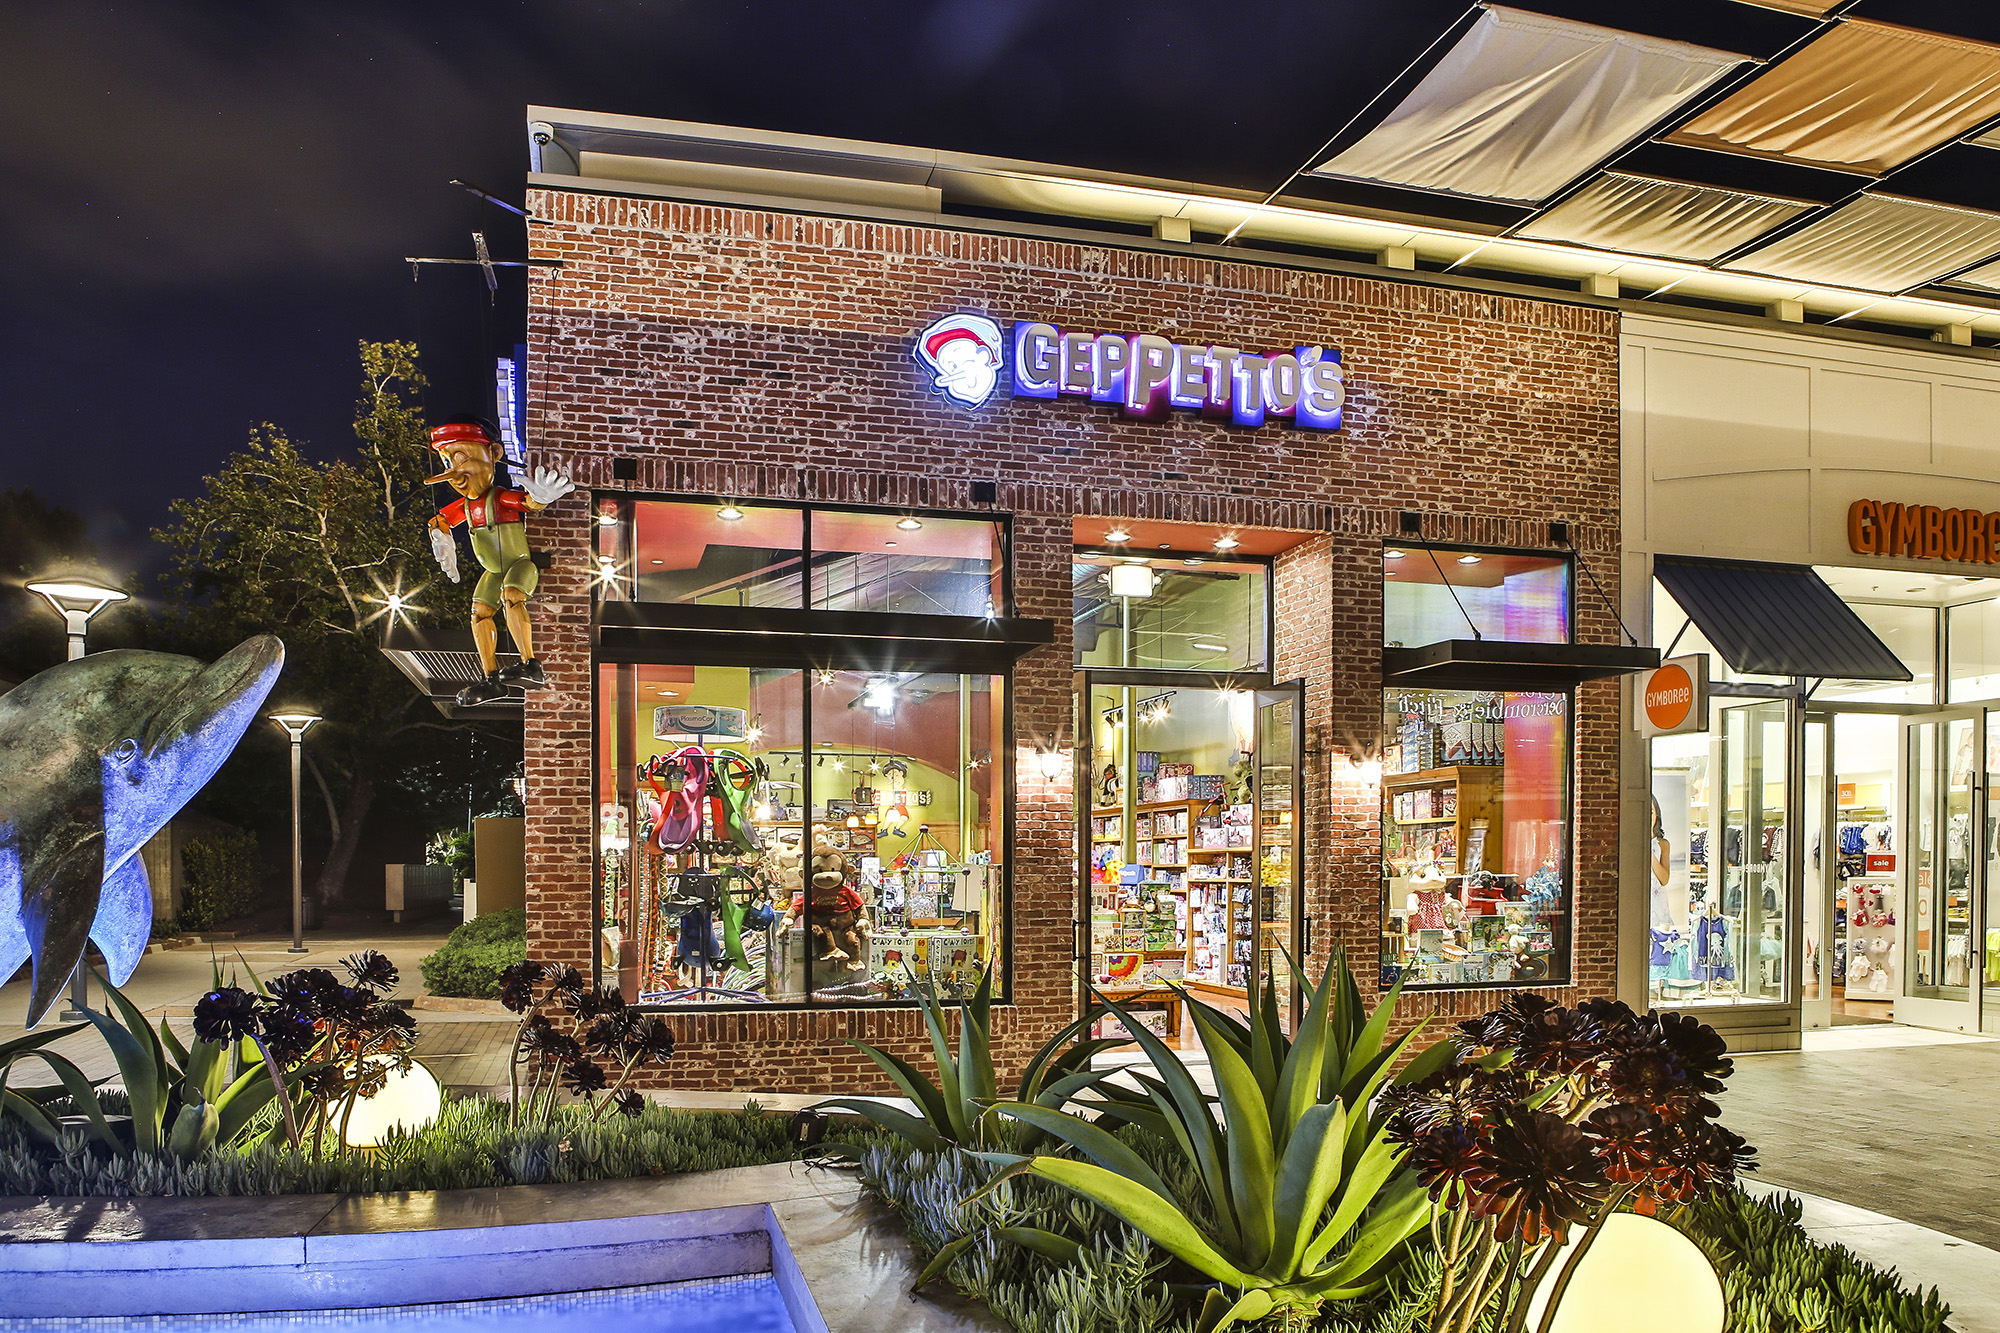 Geppetto S Toy Store Carlsbad Rustic Elegance